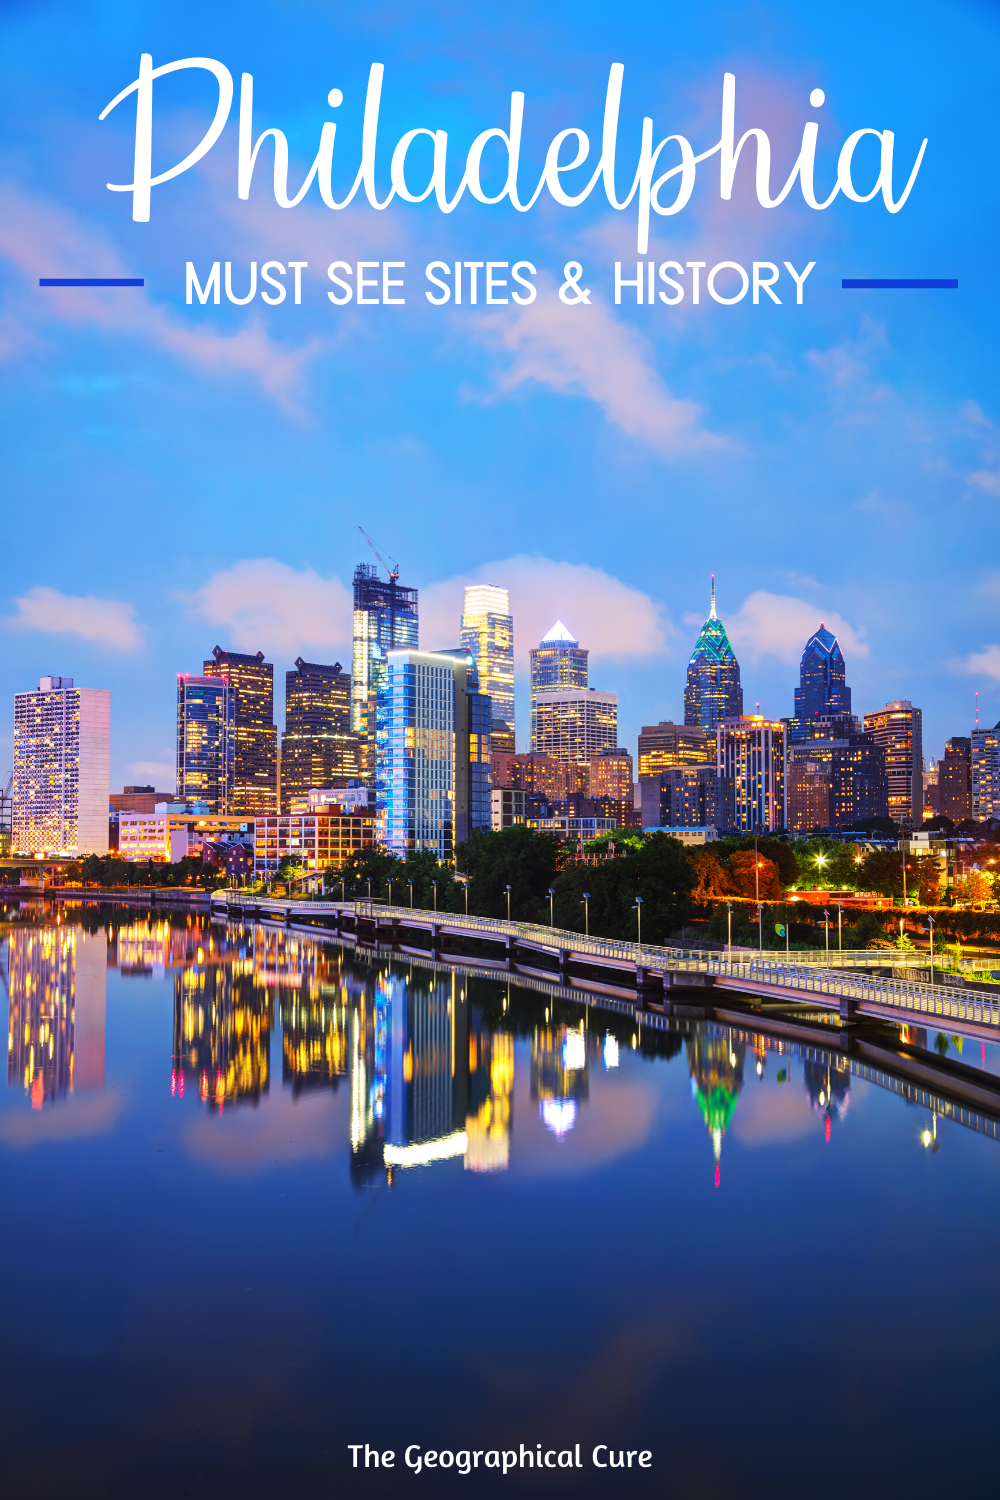 Philadelphia: Must See Historic and Cultural Sites